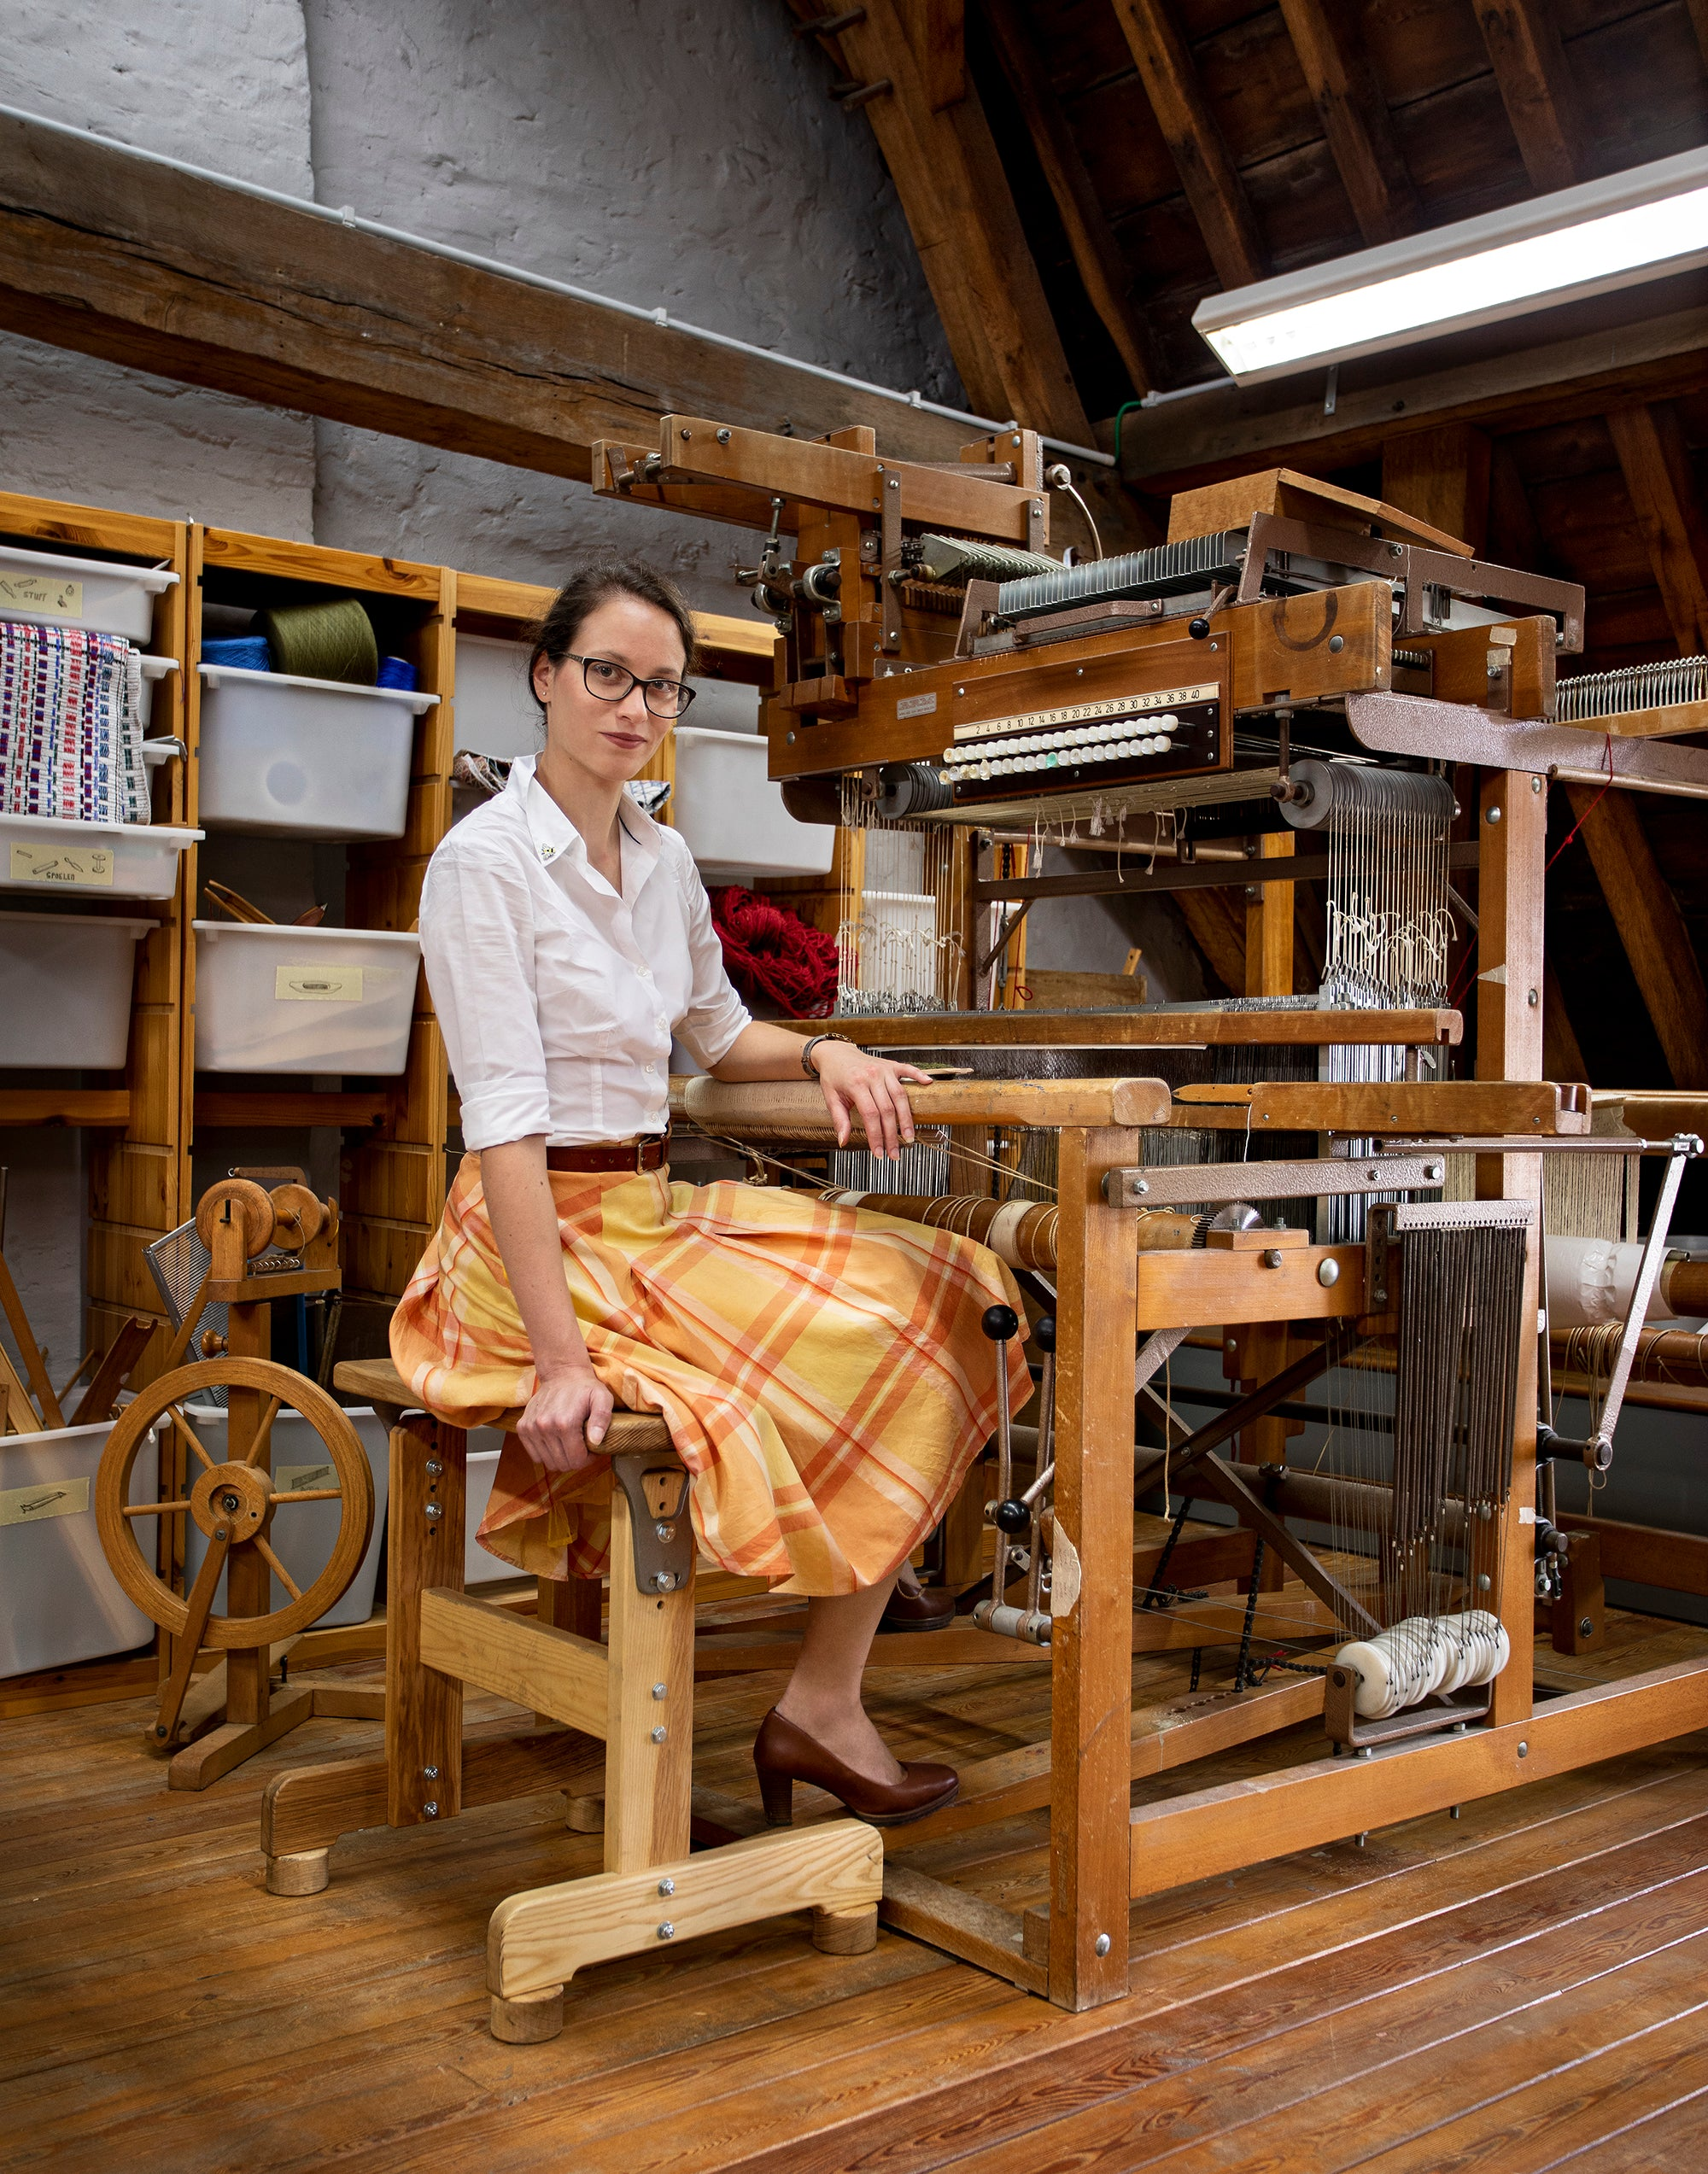 Szonja Daniel sitting next to a weaving loom in yellow plaid pattern skirt and white shirt.. Photo by Frederik Van Allemeersch made in commission of StadGent for the Van Eyck year.